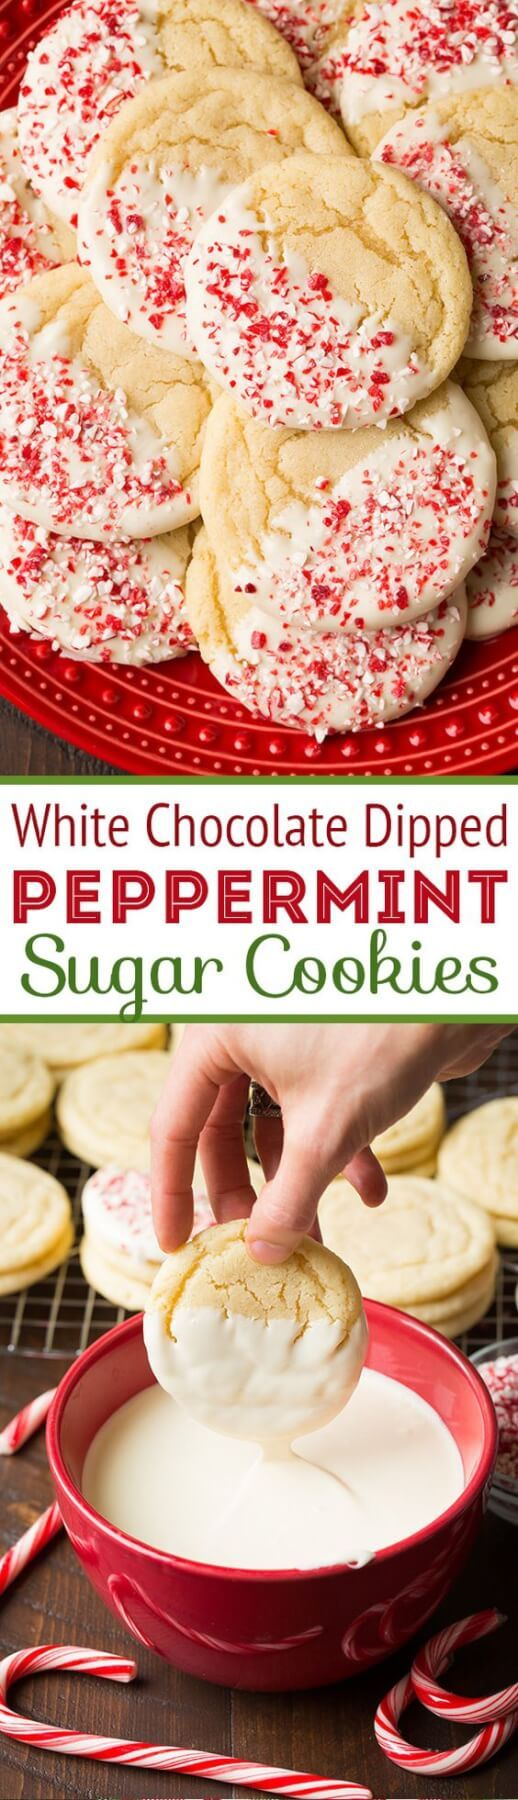 White Chocolate Dipped Peppermint Sugar Cookies Recipe